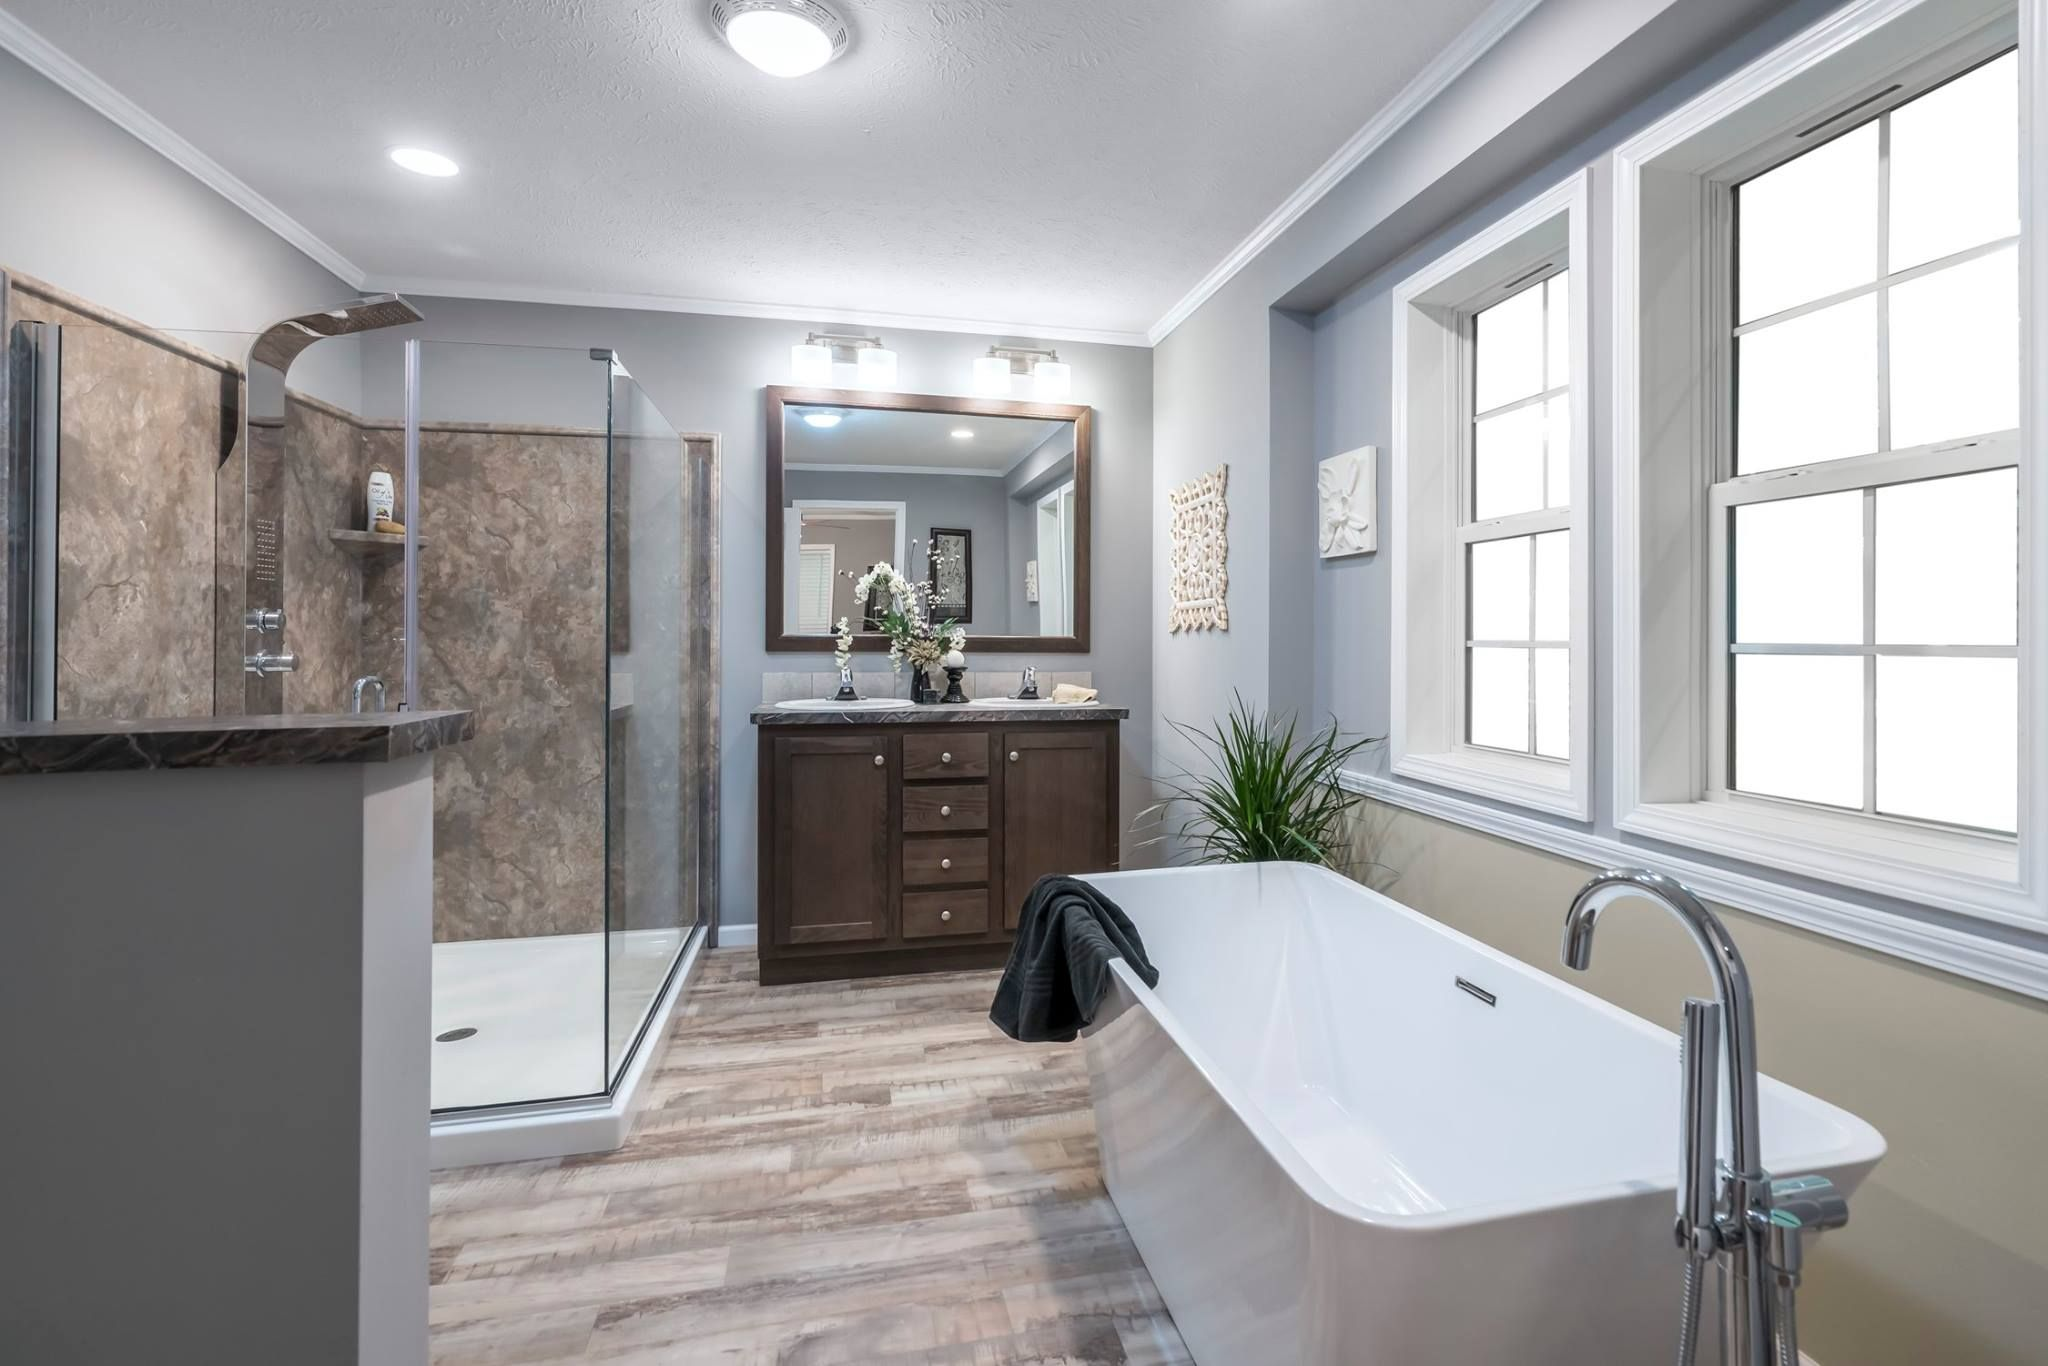 Check Out This Gorgeous Master Bath Complete With A Freestanding